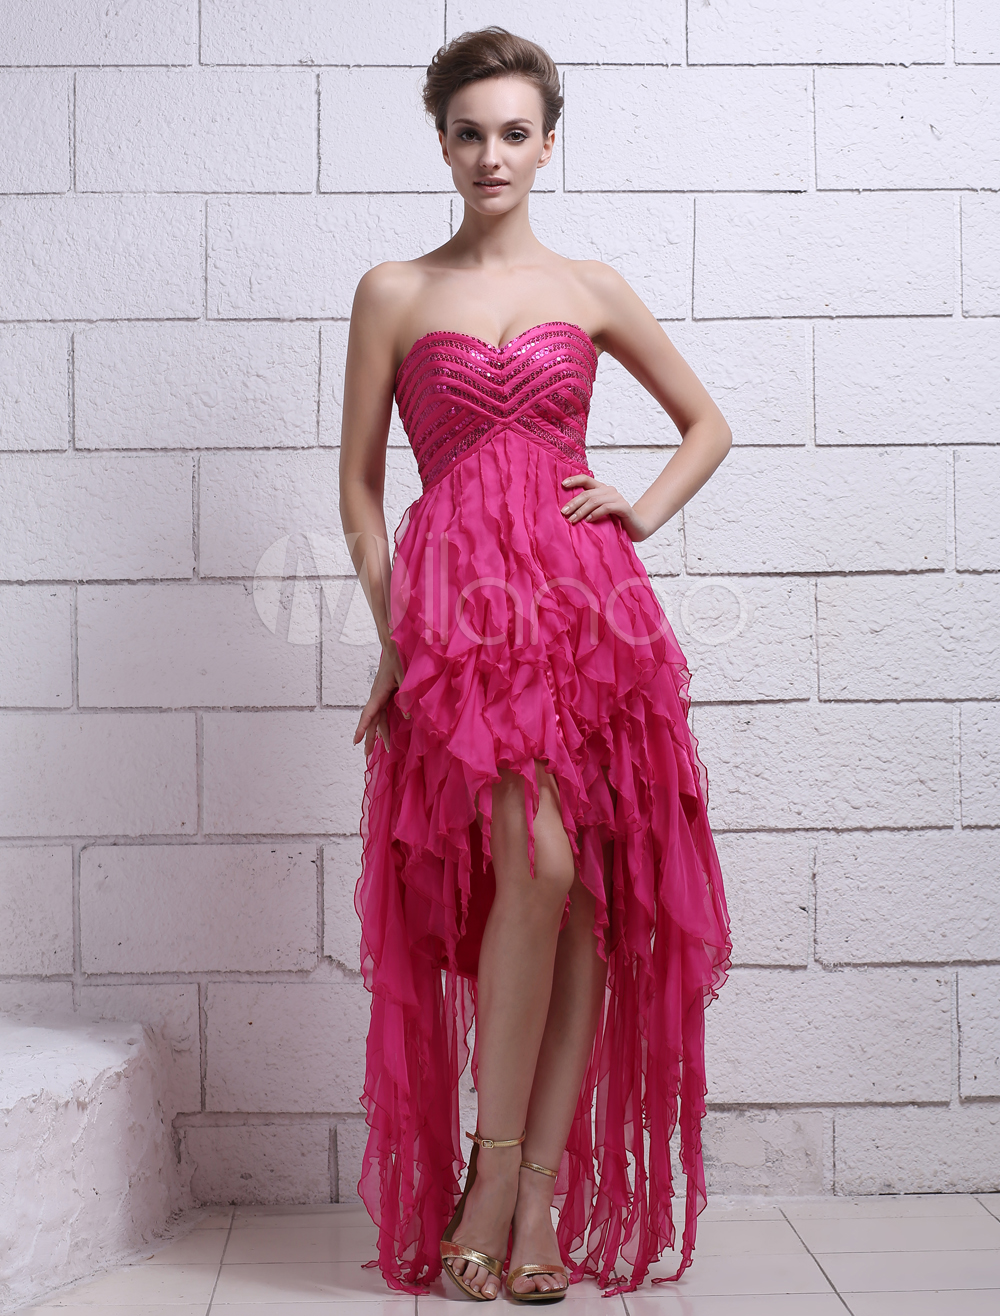 Buy Chiffon Prom Dress Sequin A-line Cocktail Dress Hot Pink Strapless Sweetheart Asymmetrical Party Dress Milanoo for $152.99 in Milanoo store